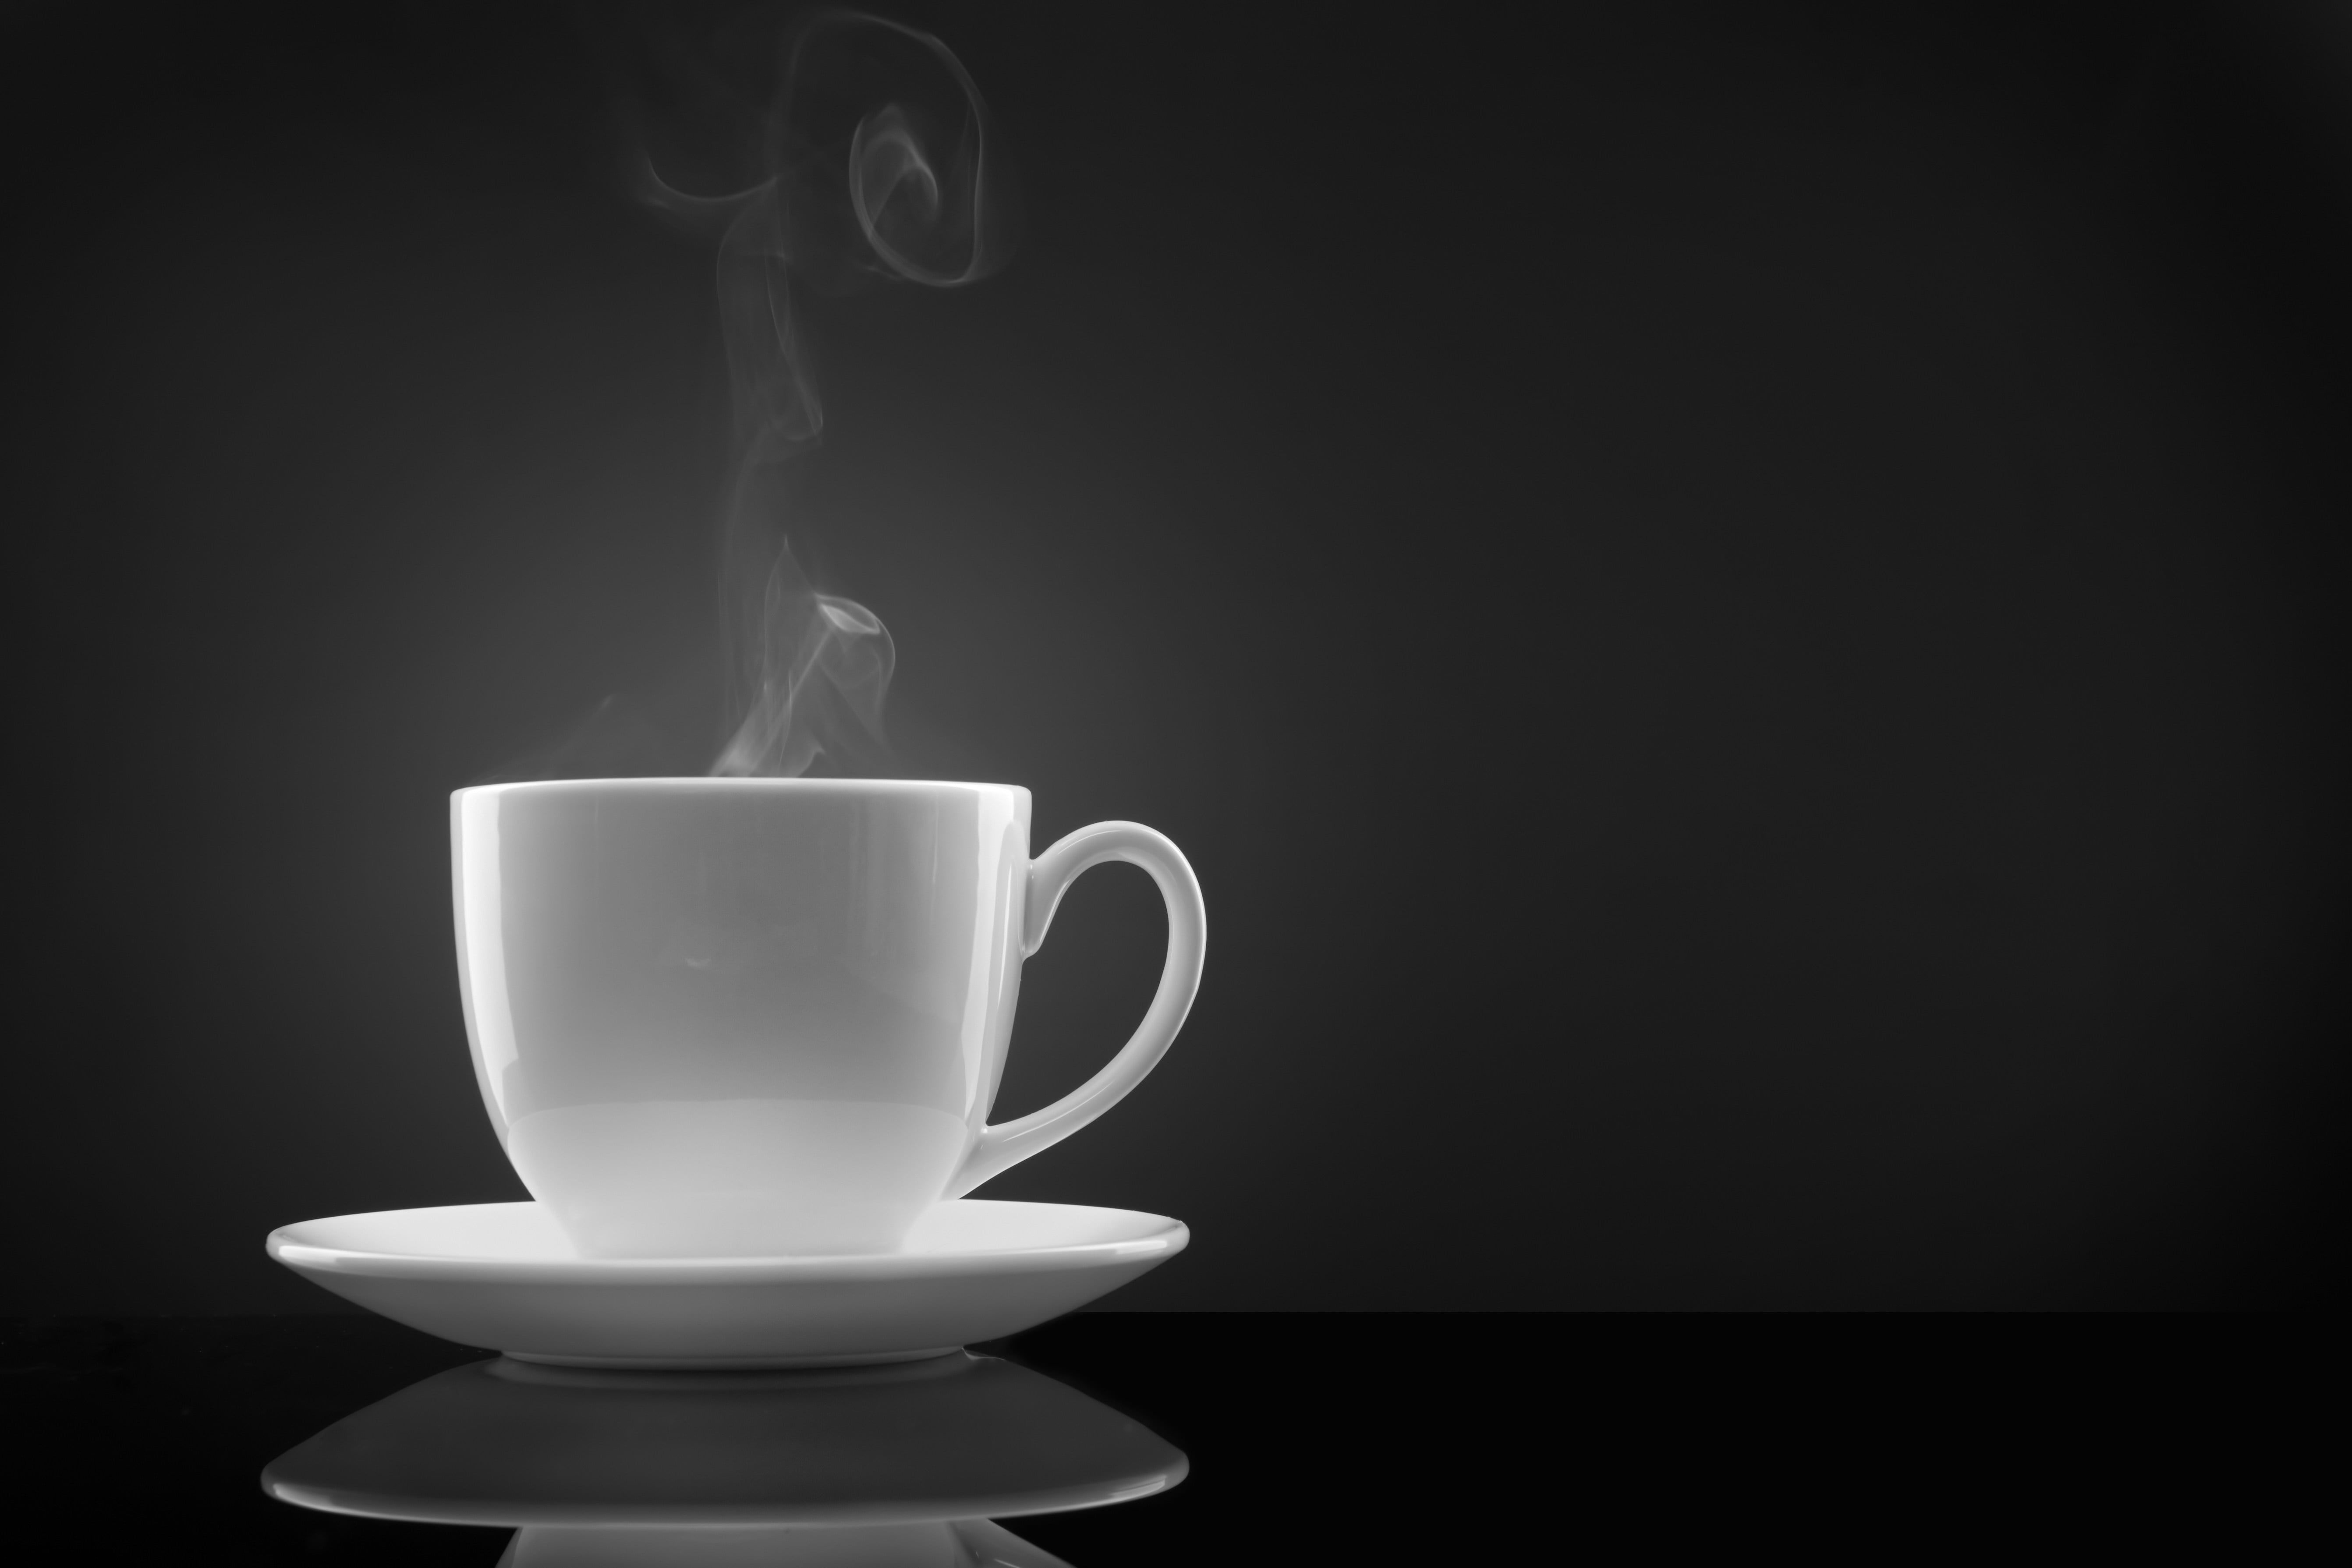 Teacup With Saucer Wallpaper Coffee Steam Black Background In 2021 Coffee Steam White Tea Cups Coffee Cups